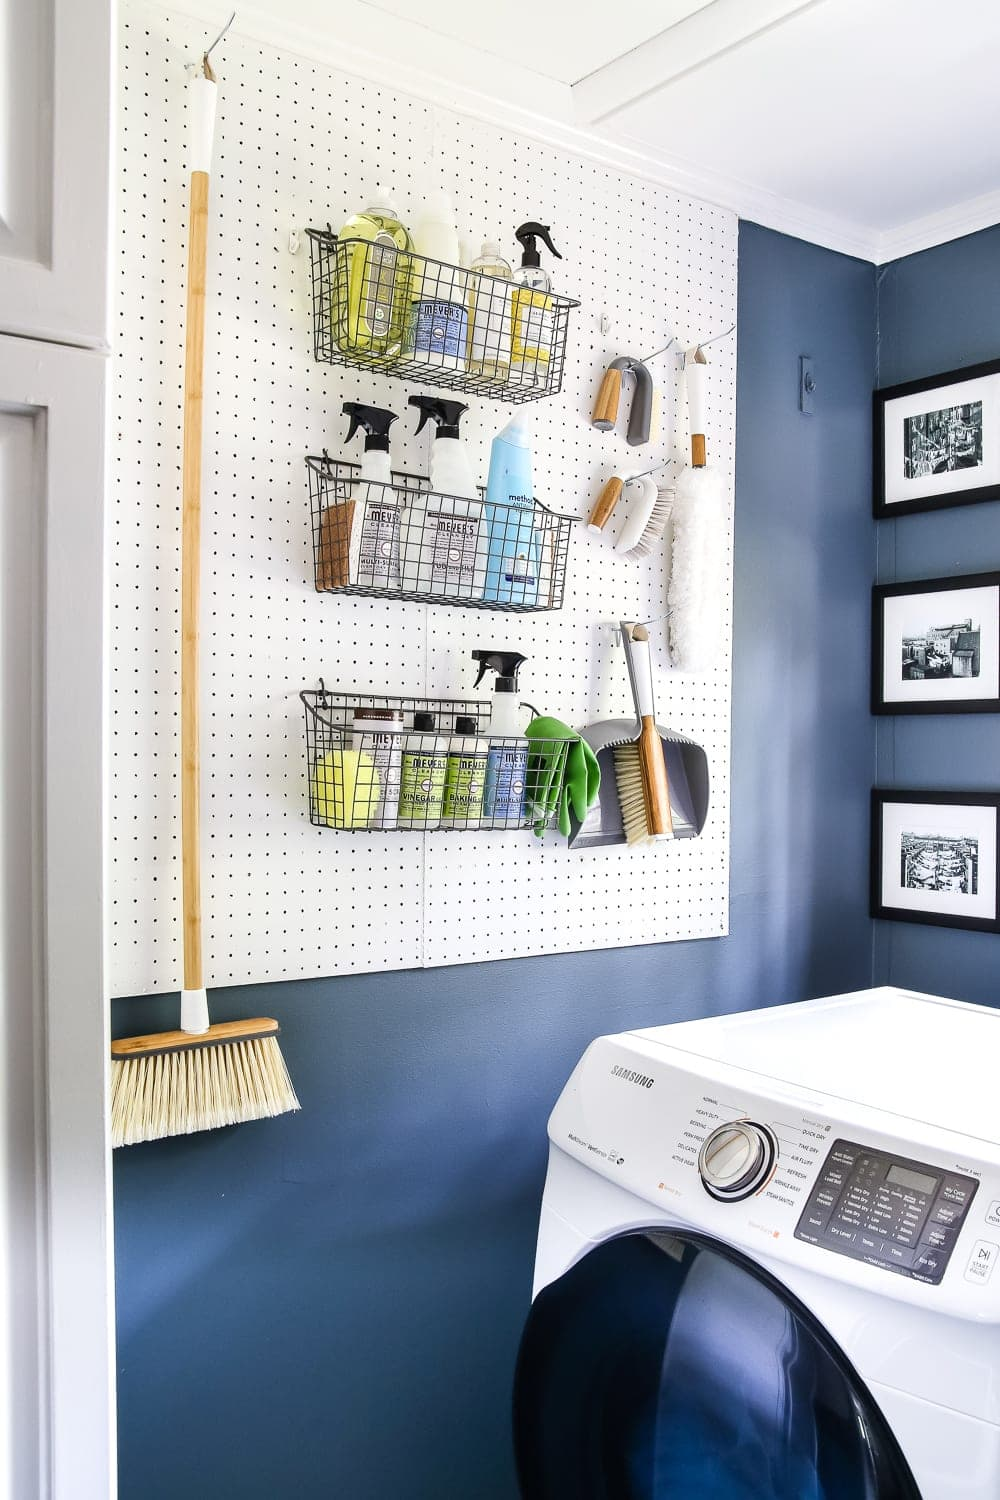 laundry room pegboard to organize cleaning supplies